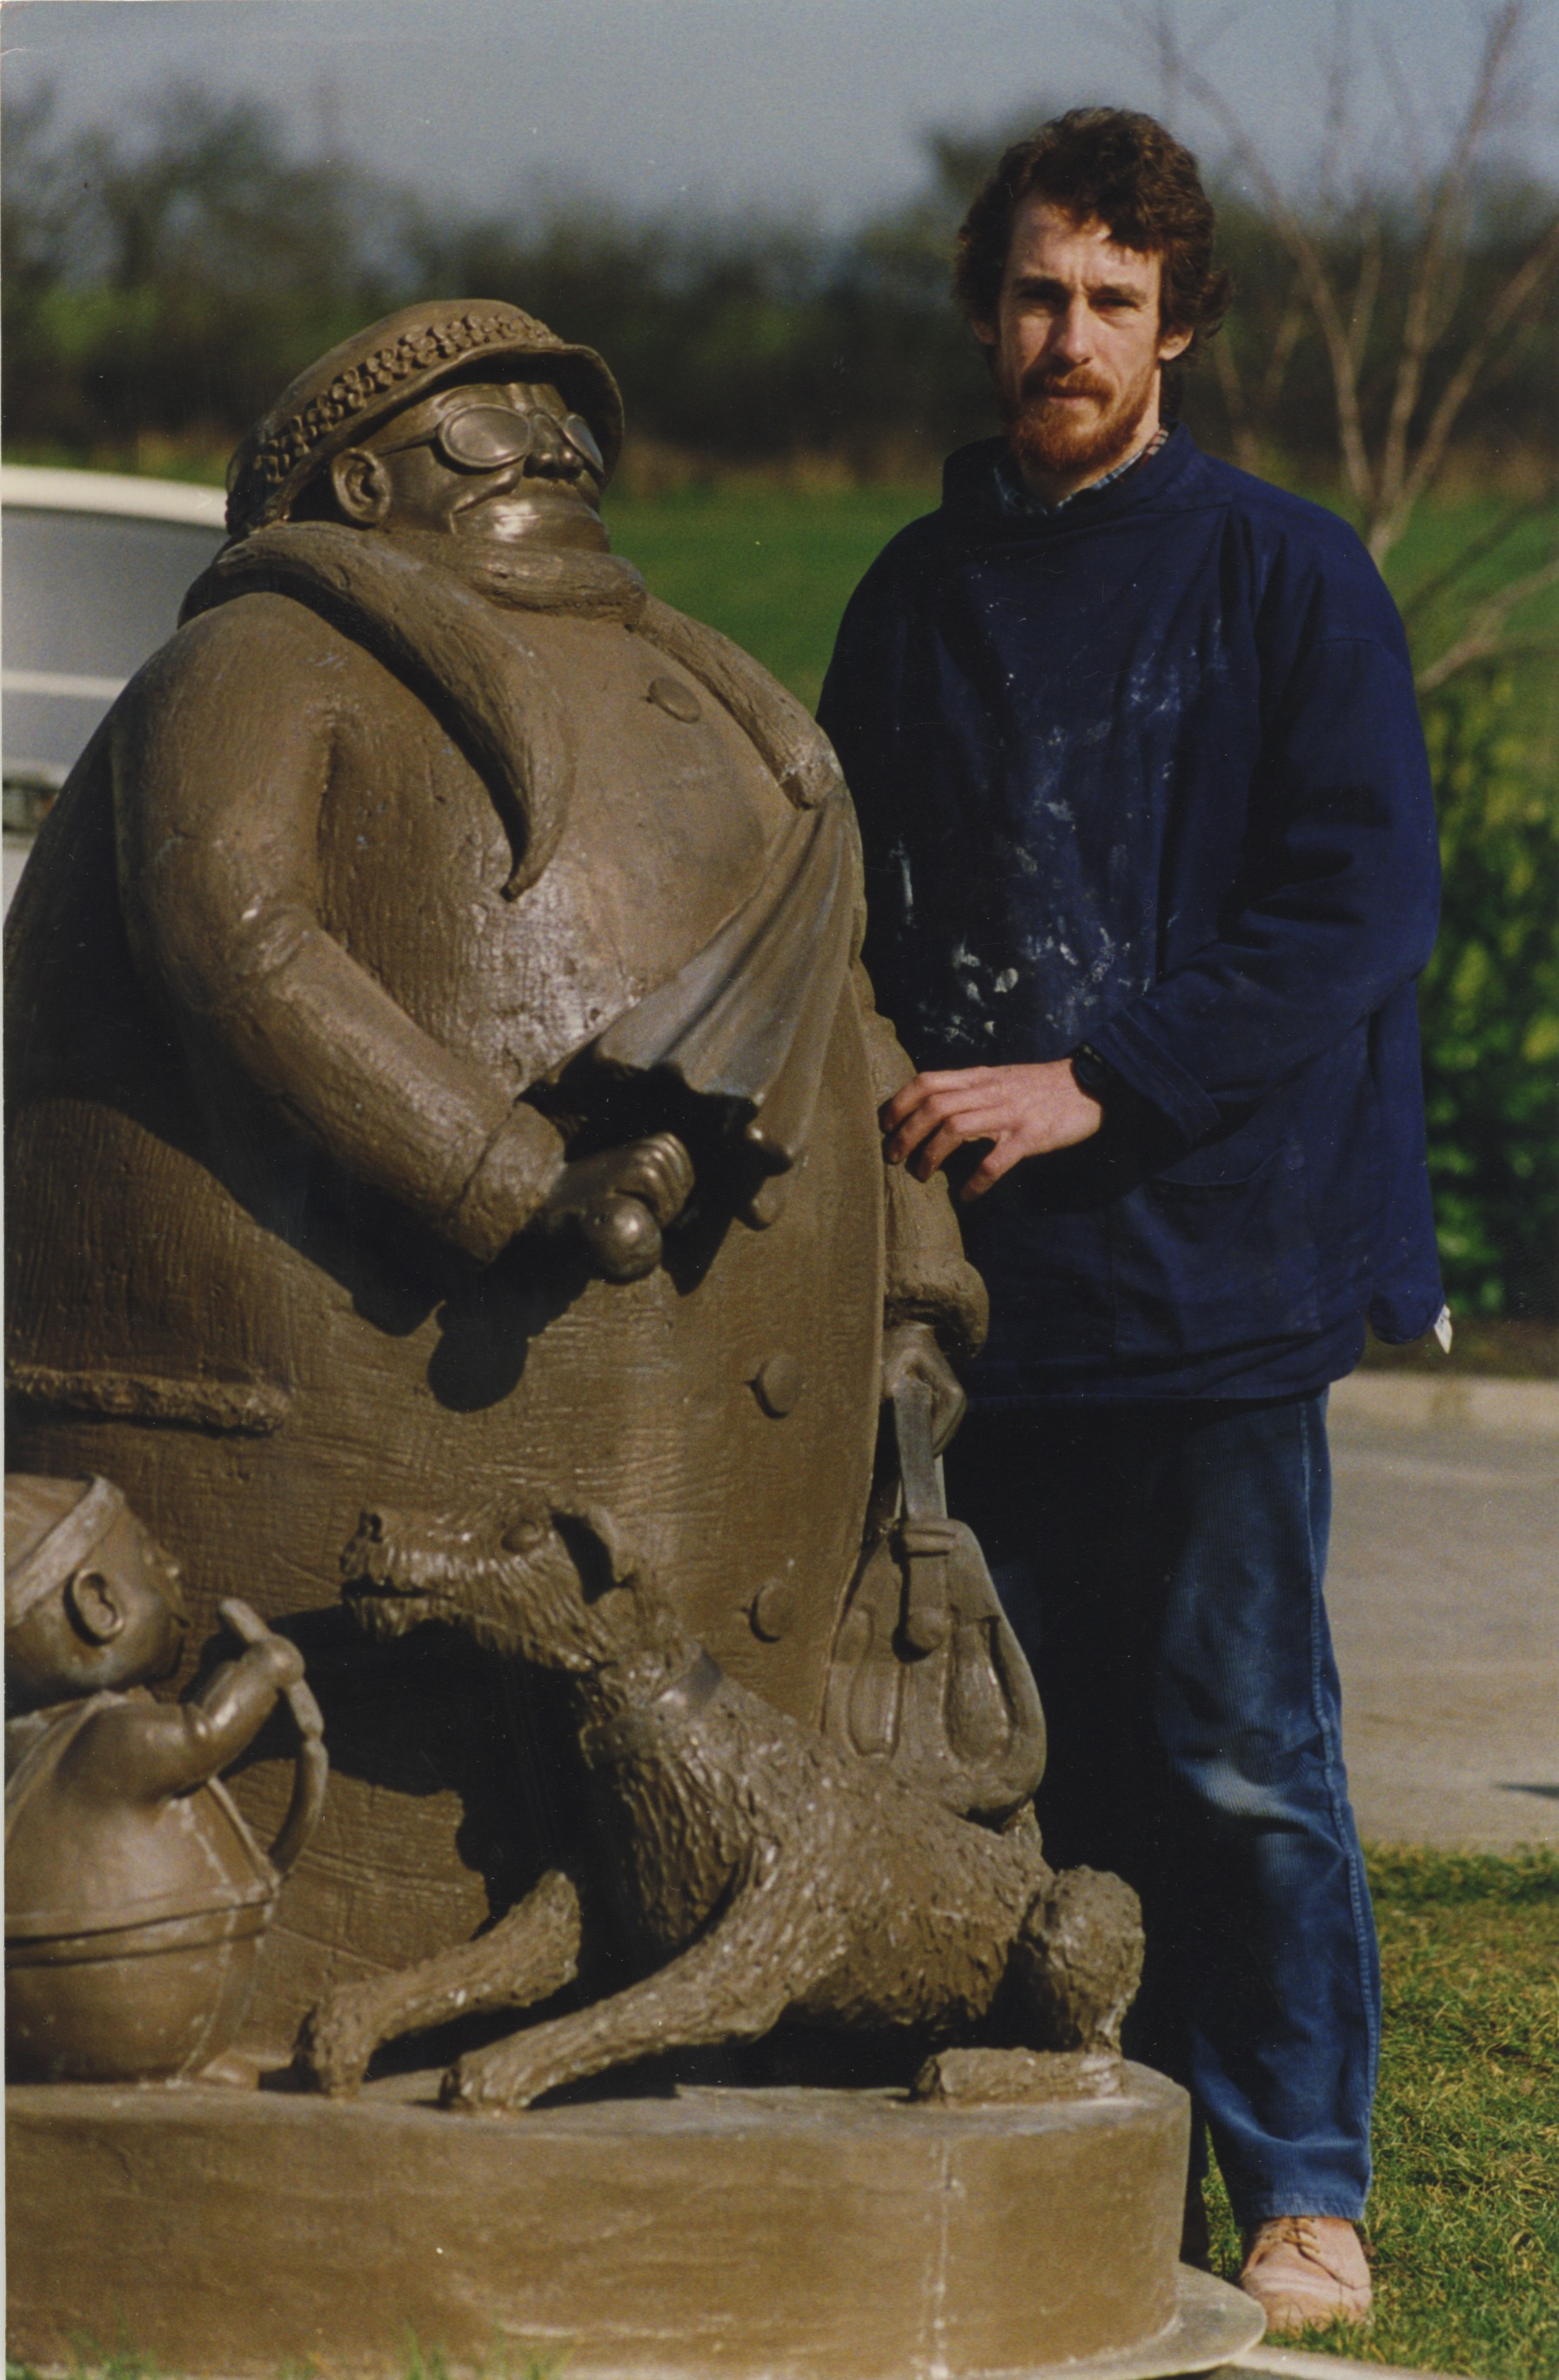 Colour photo of Grandma statue with sculptor Miles Robinson - East Anglian Daily Times, September 1993 (Image ref: GAR-F-S-460-2)